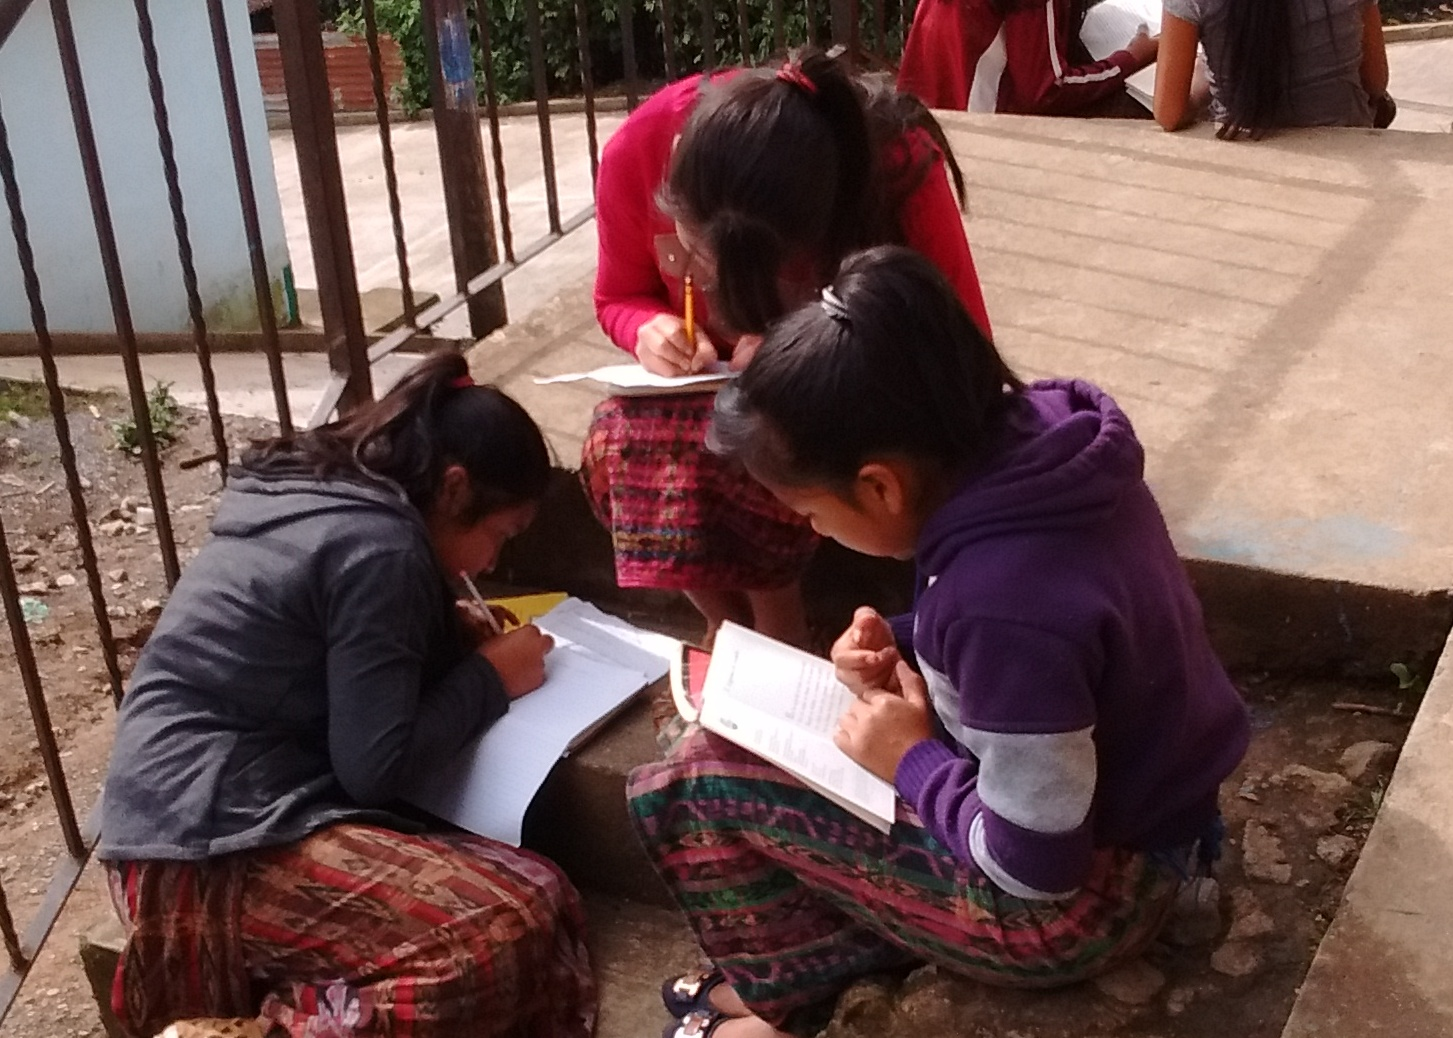 Students work on a writing assignment on the front steps of the school.